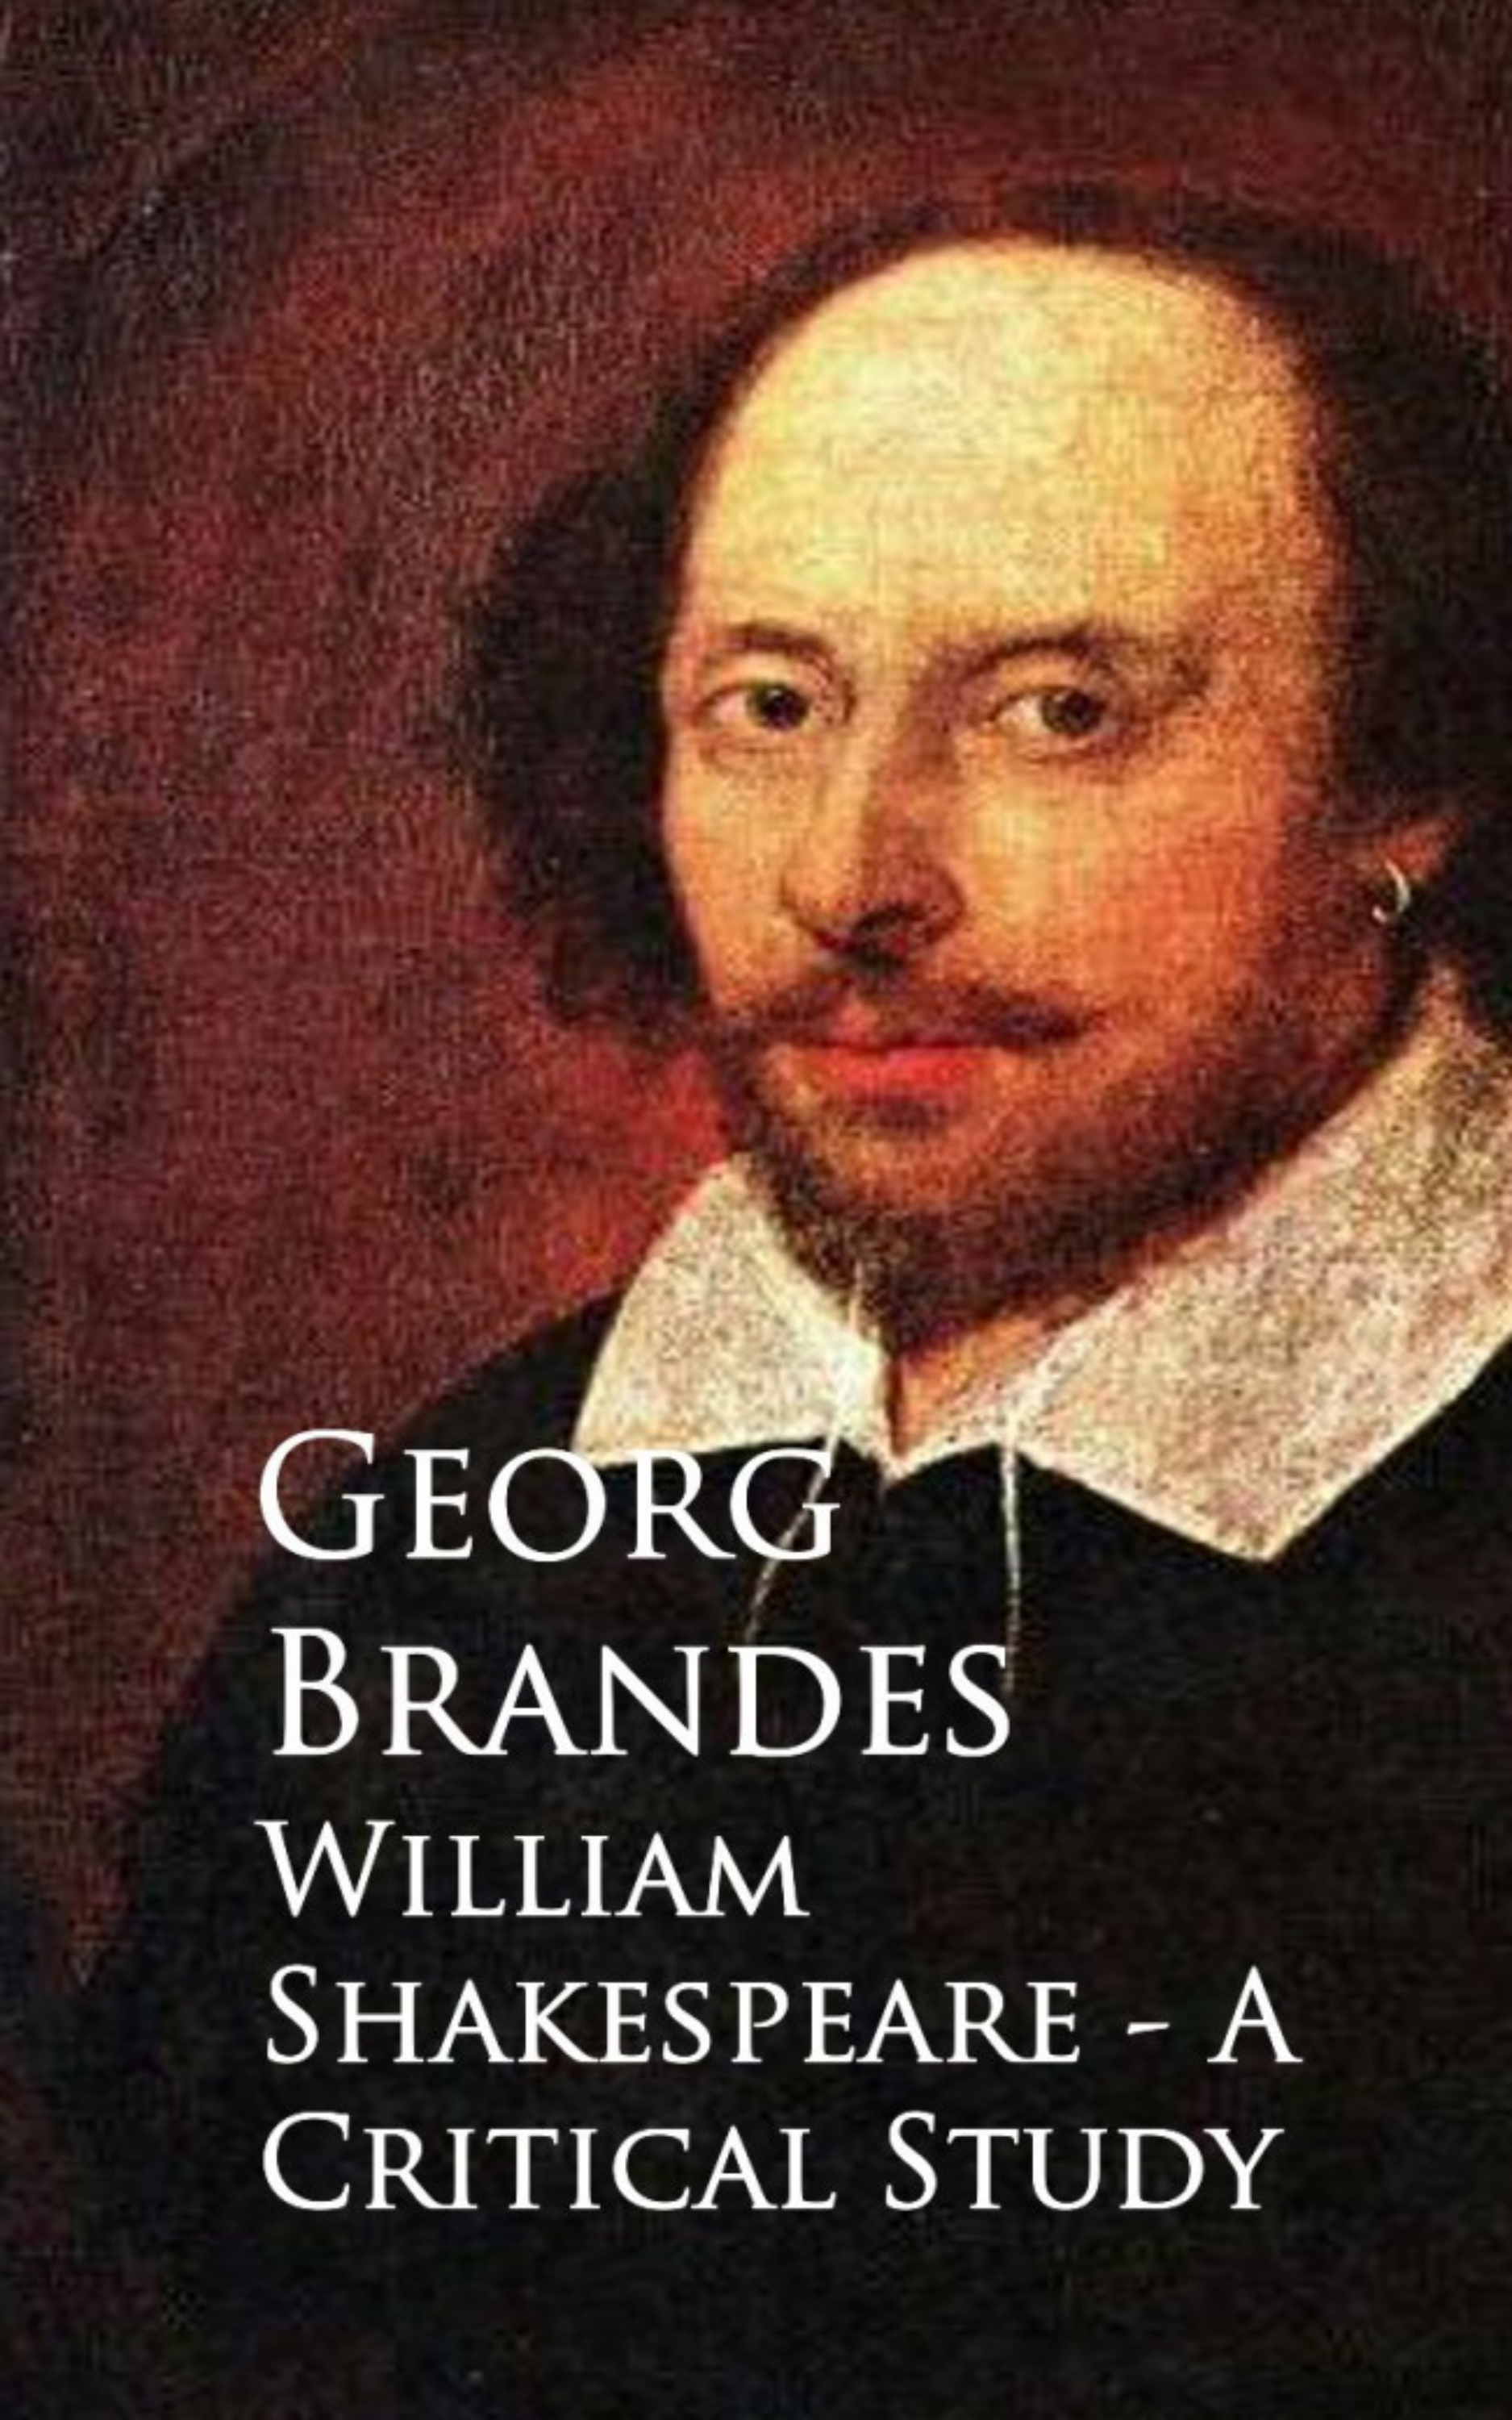 Georg Brandes William Shakespeare - A Critical Study medical negligence a critical study